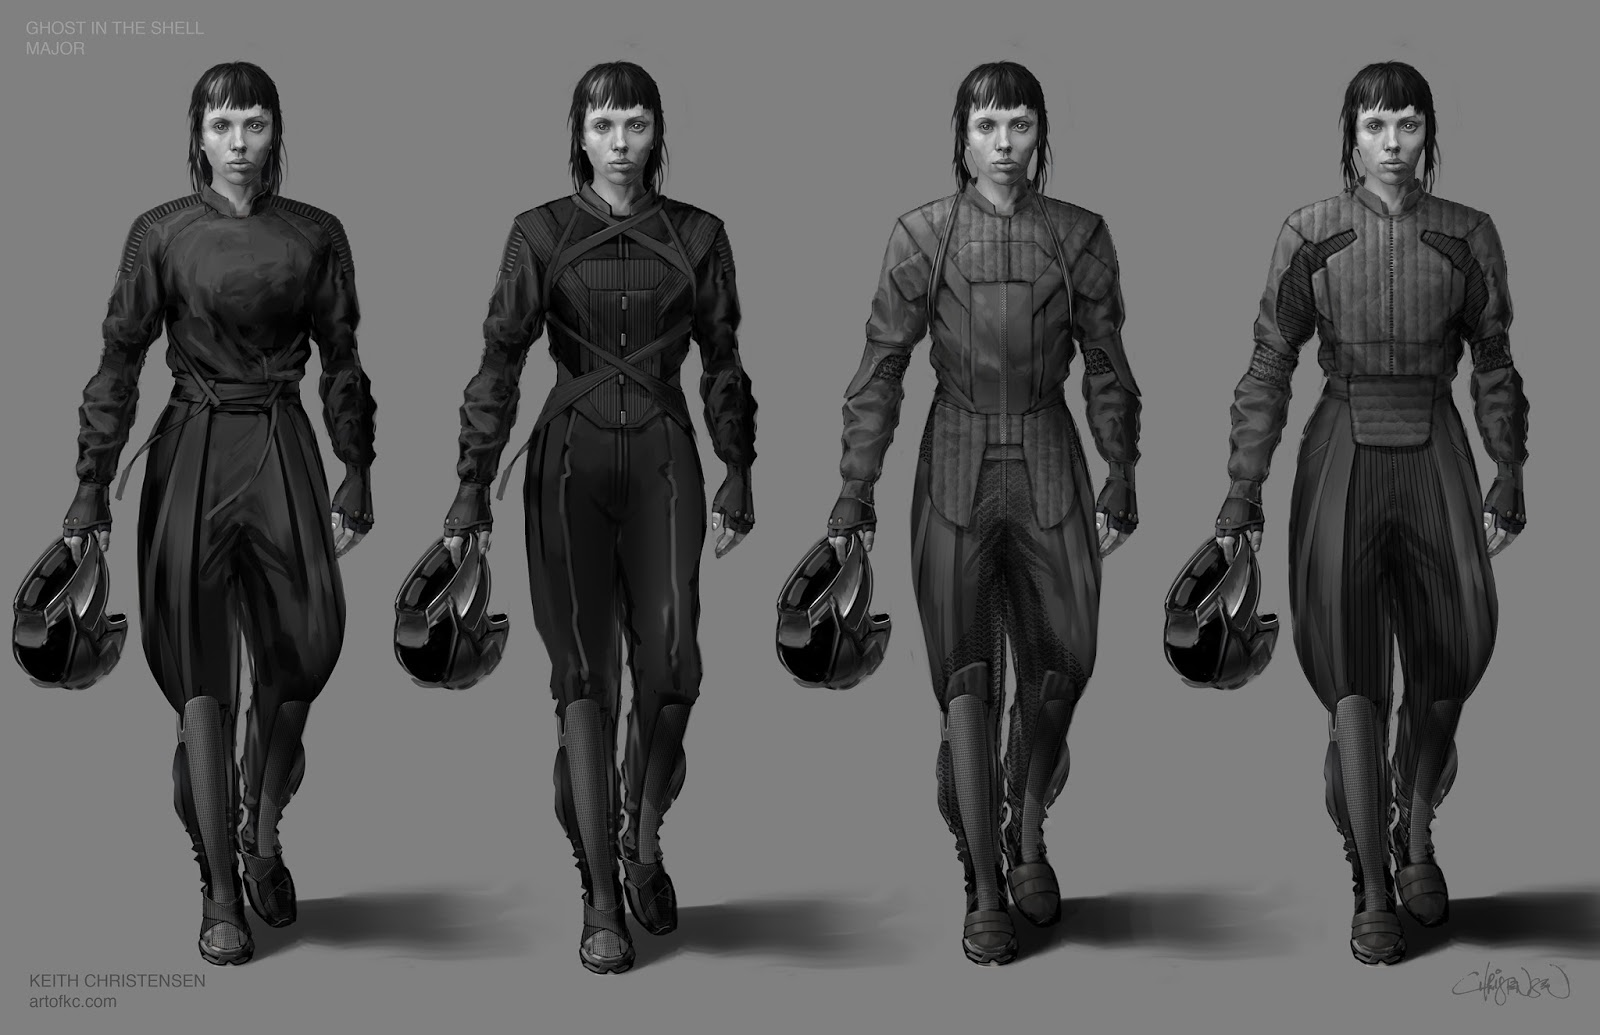 Film Sketchr See What Major Almost Looked Like In Ghost To The Shell Concept Art By Keith Christiansen